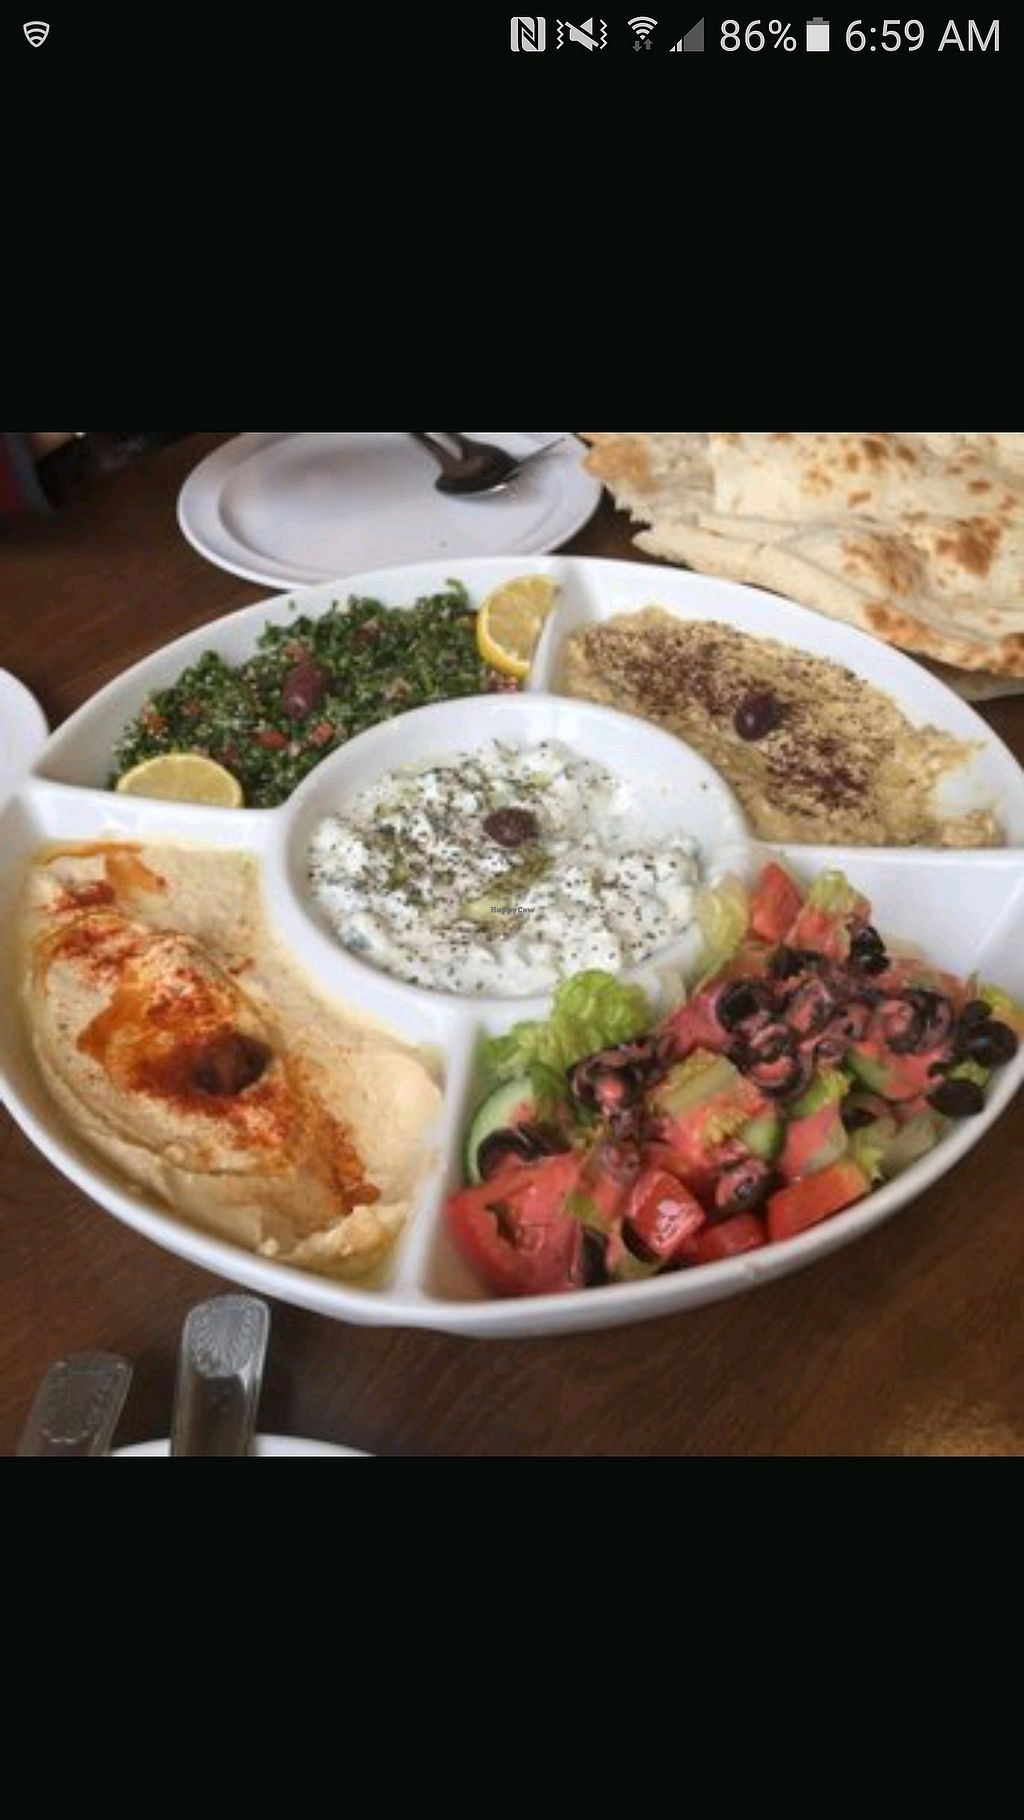 "Photo of Falafel Den  by <a href=""/members/profile/LeanPartian"">LeanPartian</a> <br/>veggie platter <br/> December 9, 2017  - <a href='/contact/abuse/image/92130/333608'>Report</a>"